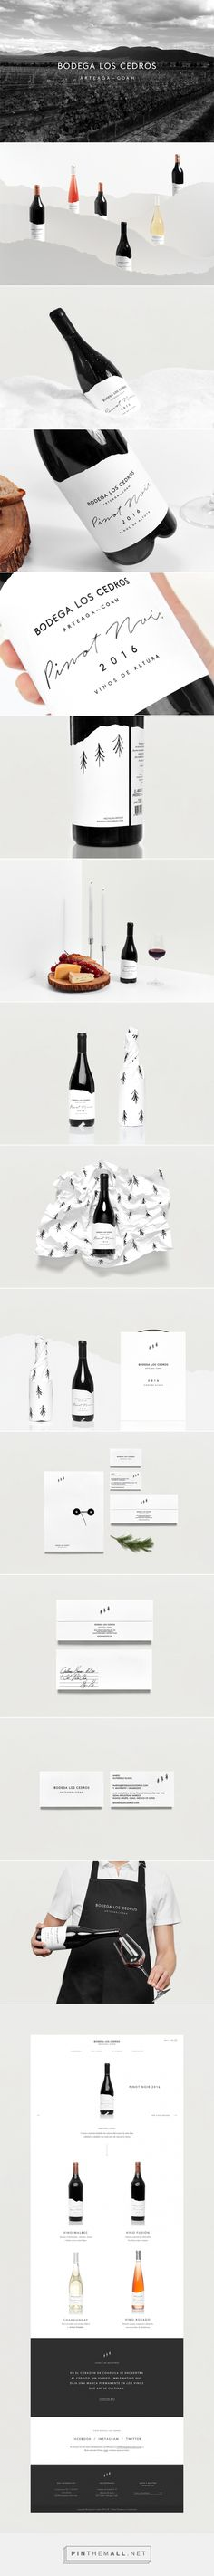 Branding Packaging & UI Design — Bodega Los Cedros | Anagrama... - a grouped images picture - Pin Them All